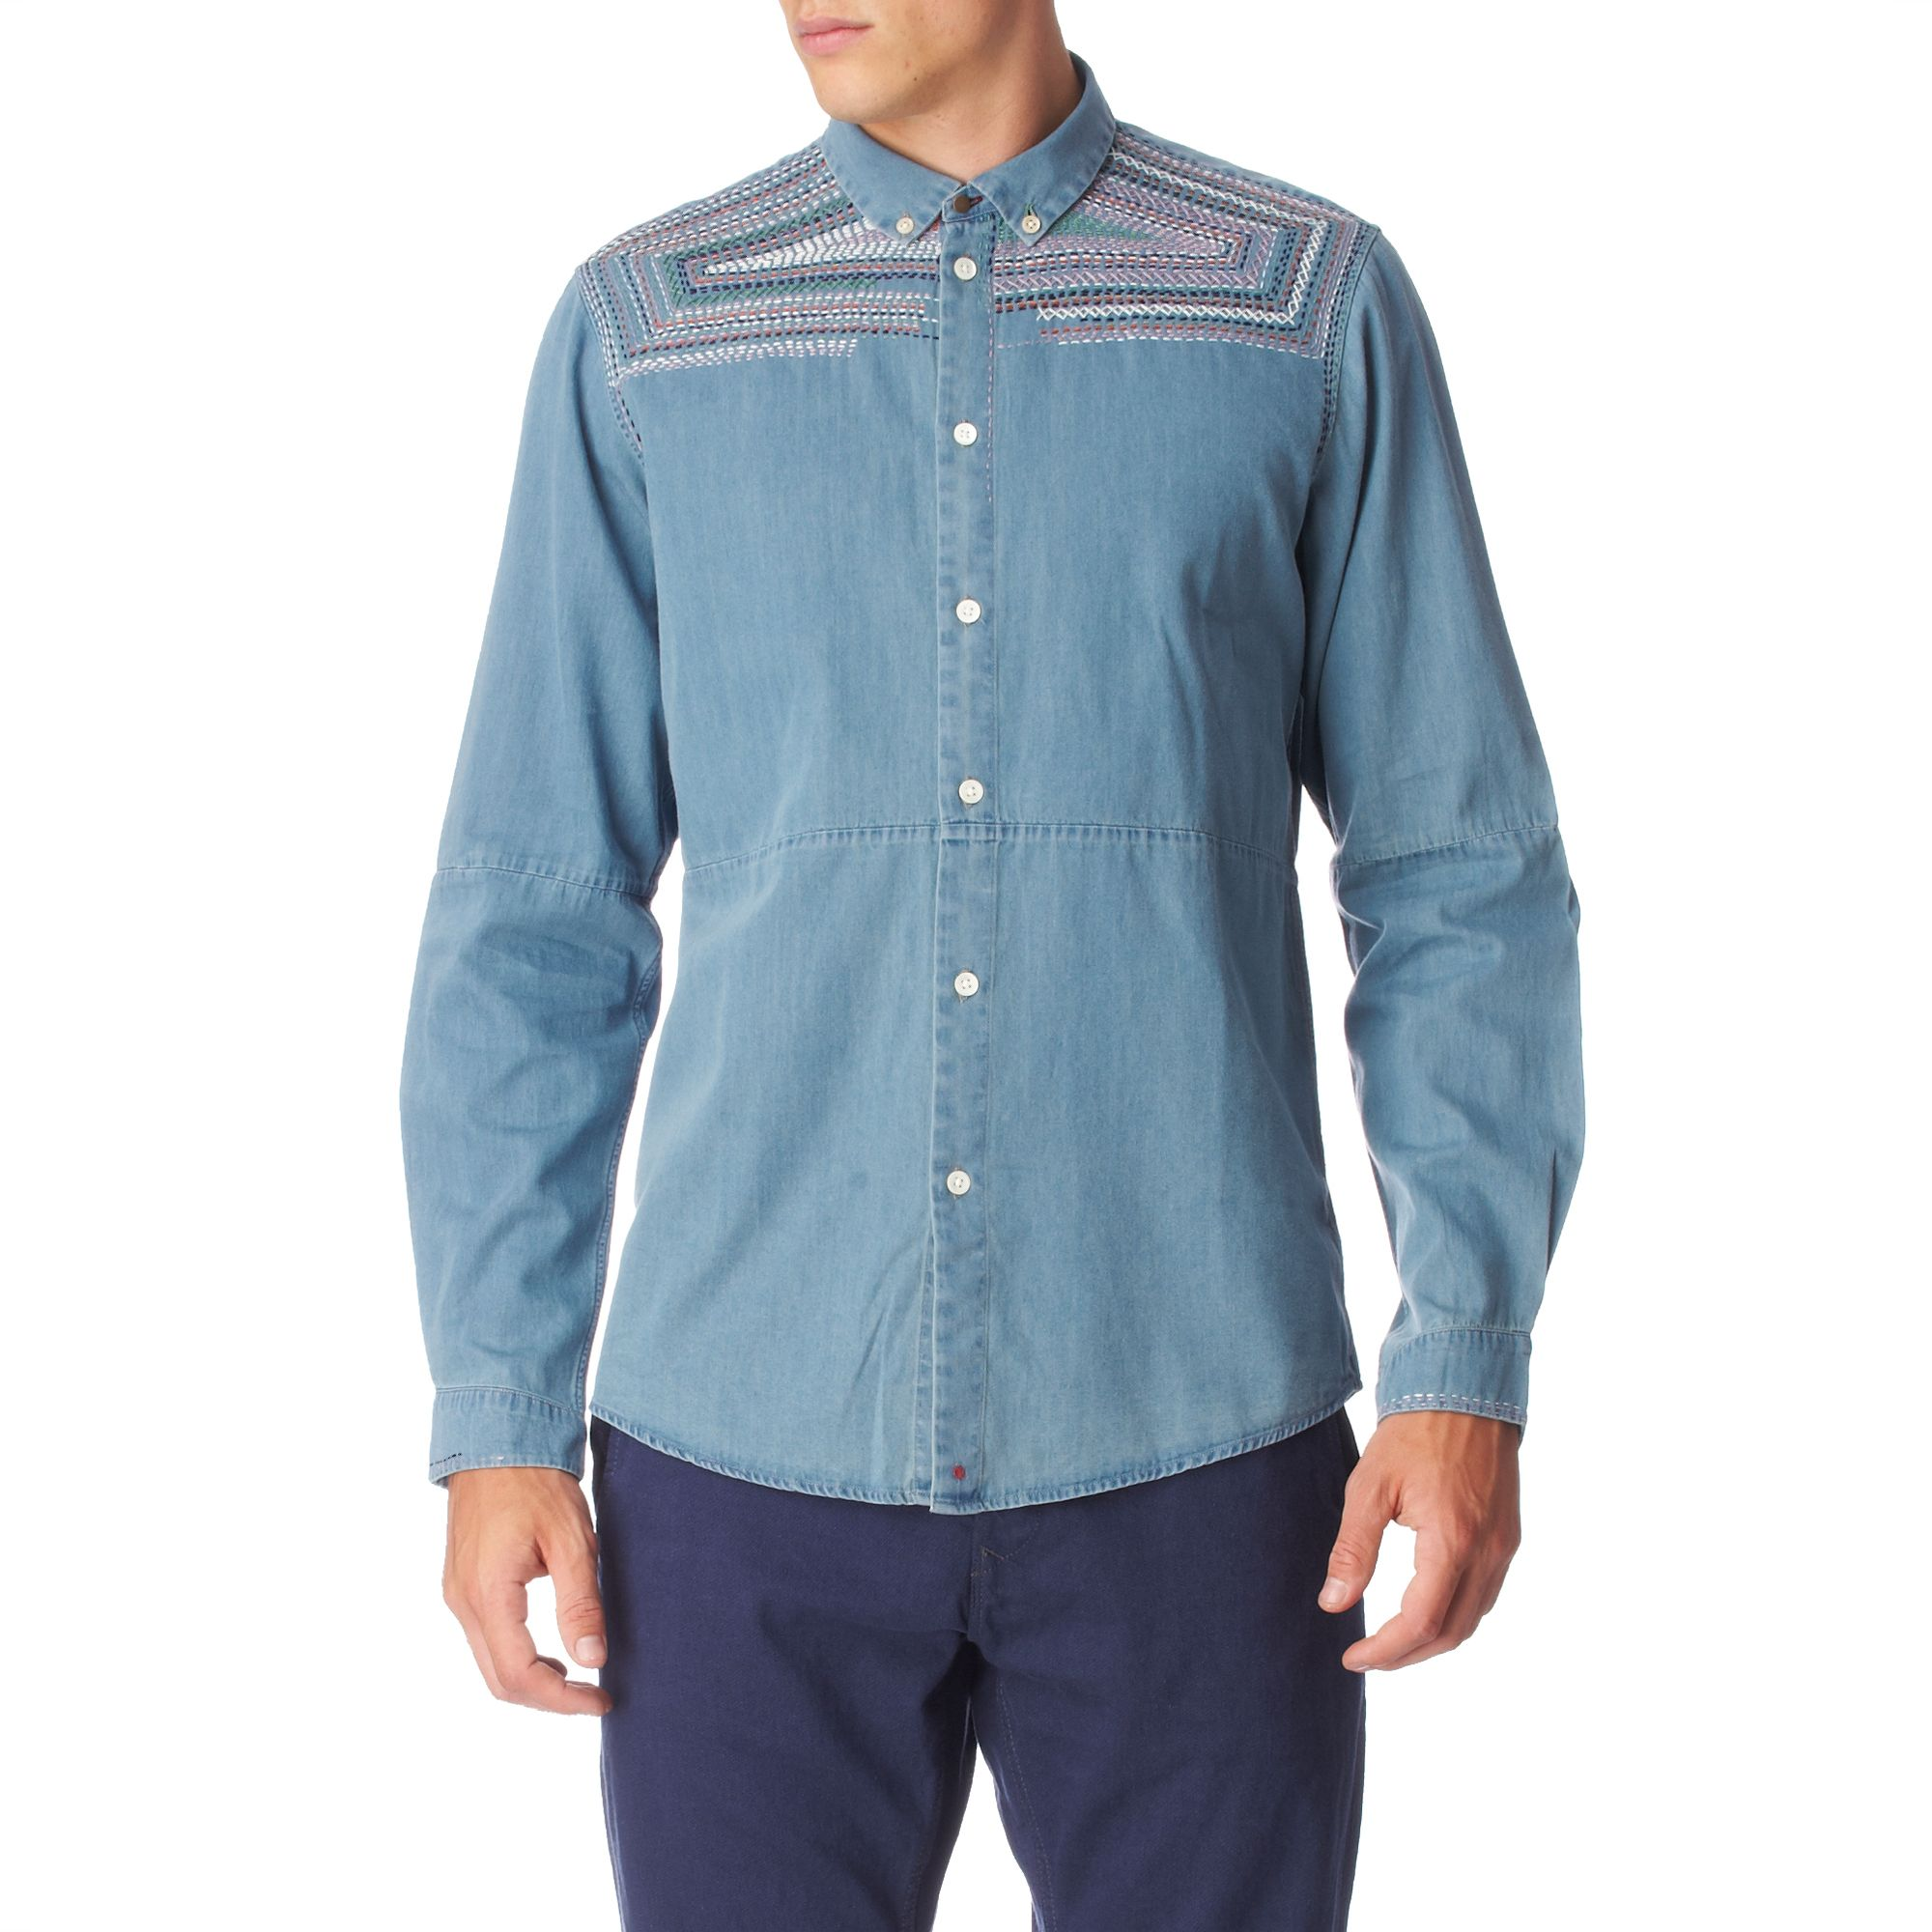 Paul smith embroidered slim fit single cuff shirt in blue